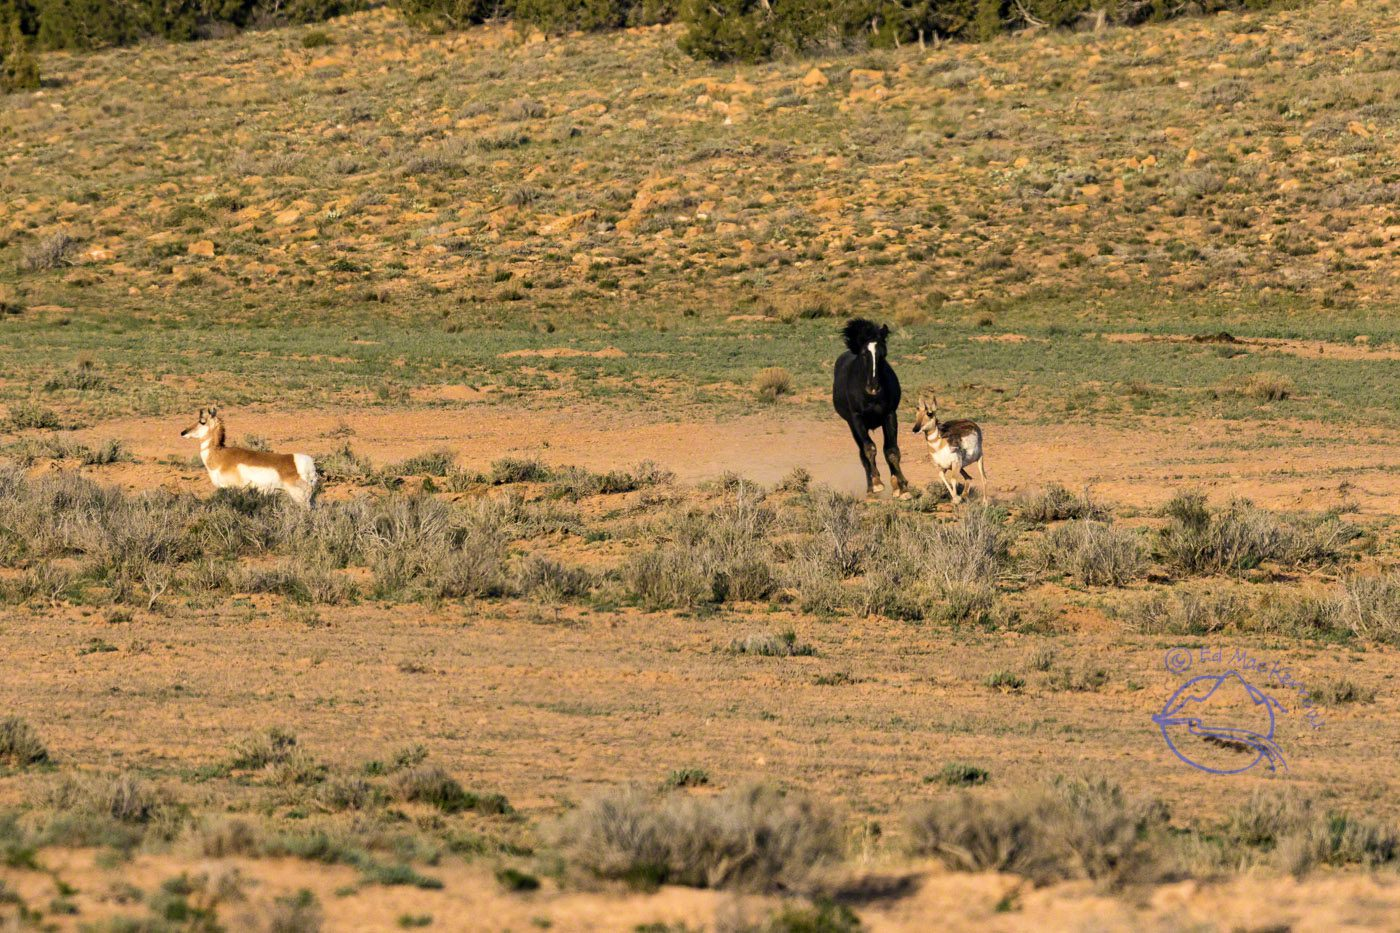 A mustang stallion plays a game of chase with an antelope.